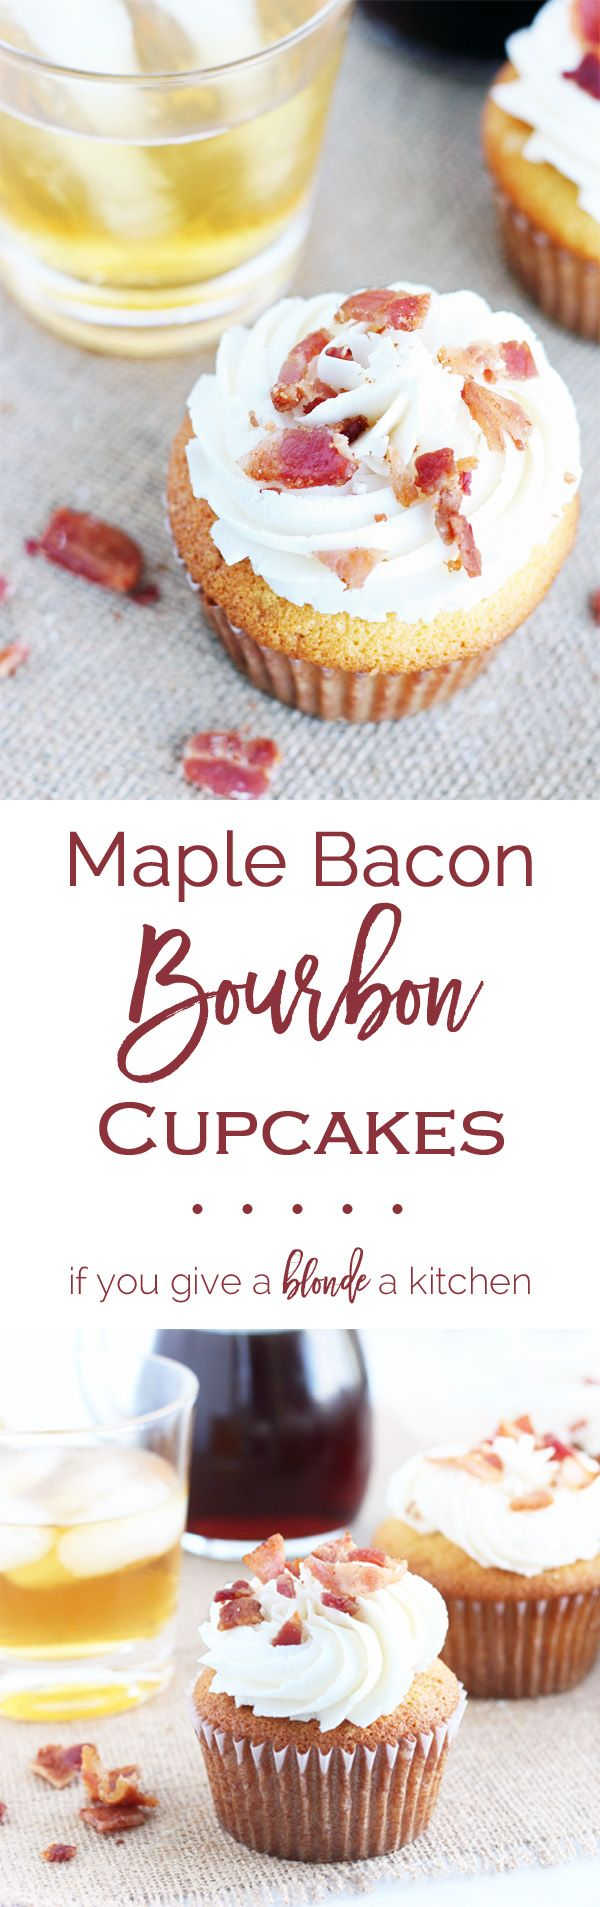 Maple bacon bourbon cupcakes are THE boozy cupcakes you need to make this fall. | www.ifyougiveablondeakitchen.com